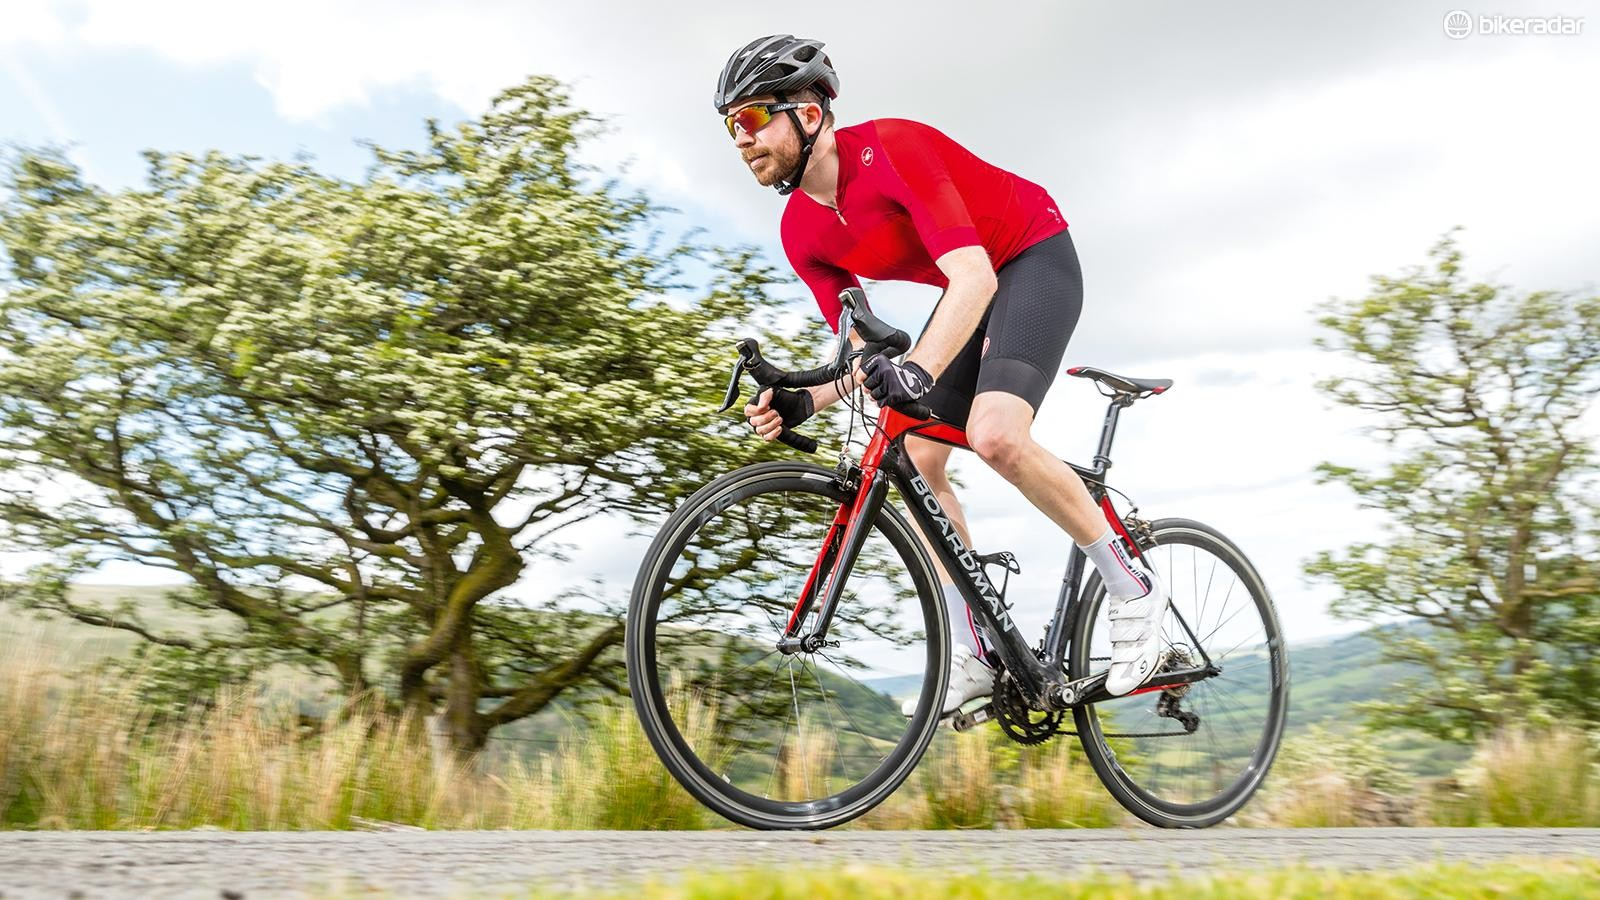 Strong hamstrings will help you keep a strong pedal stroke throughout your ride and reduce the risk of injury